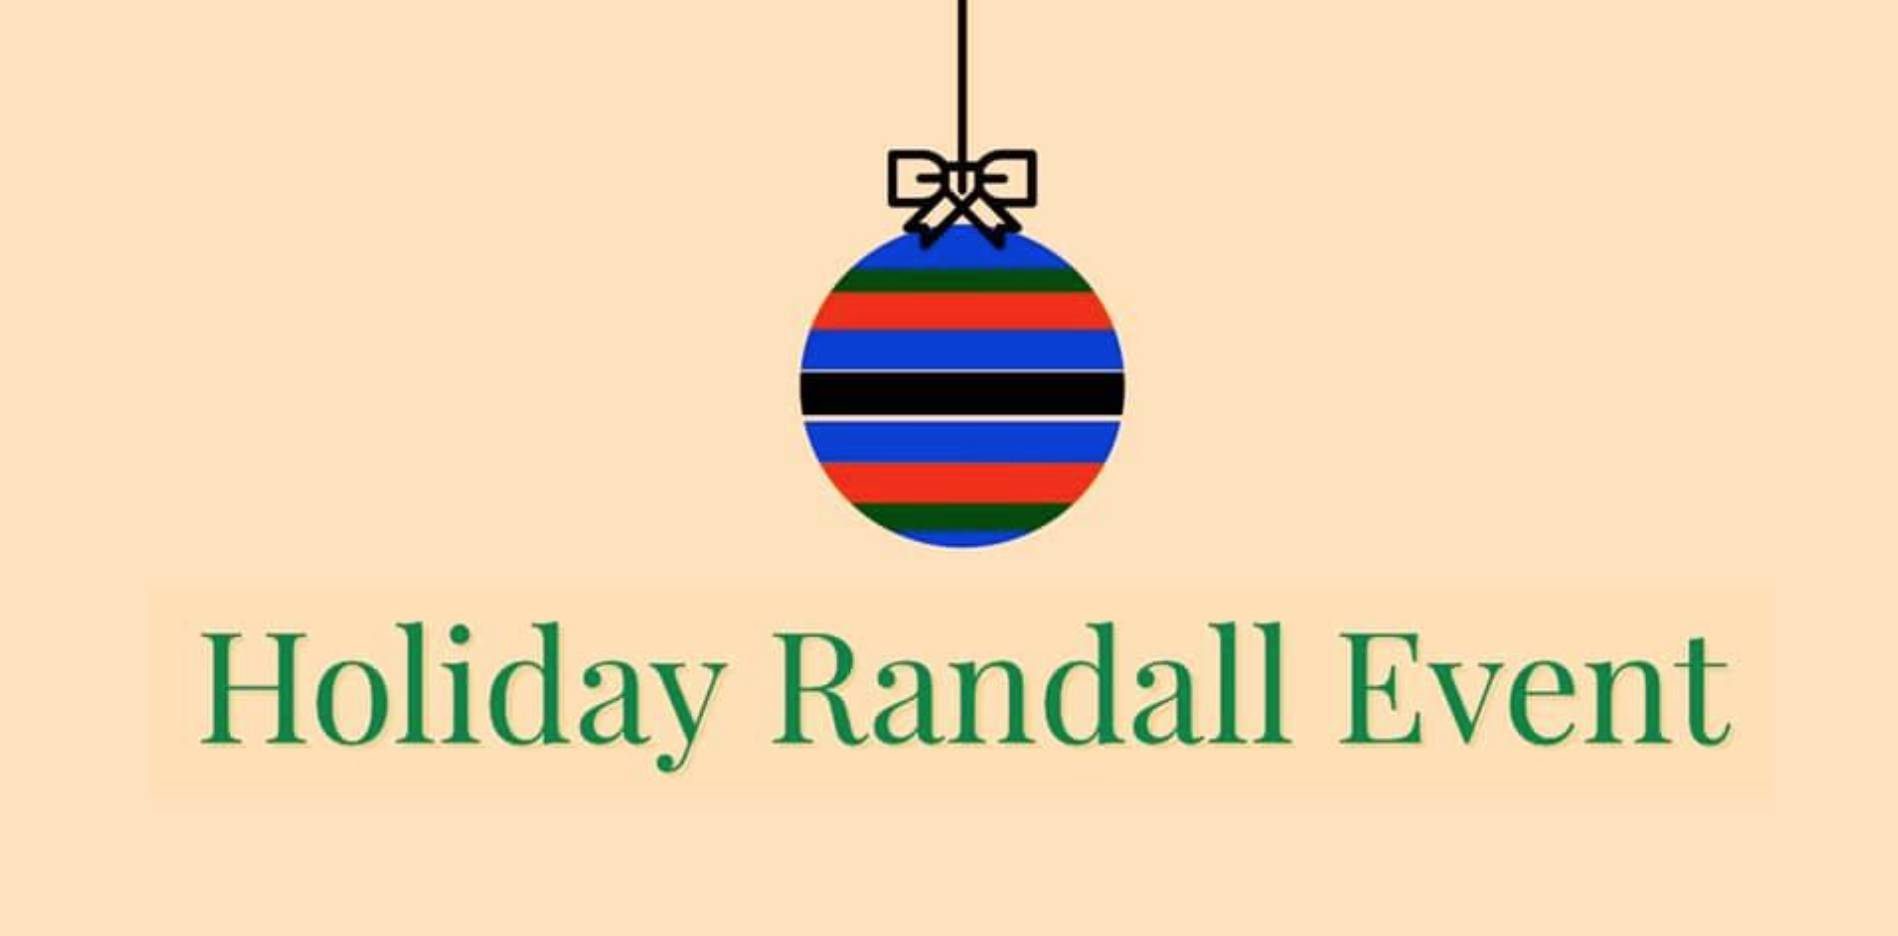 Holiday Randall Event